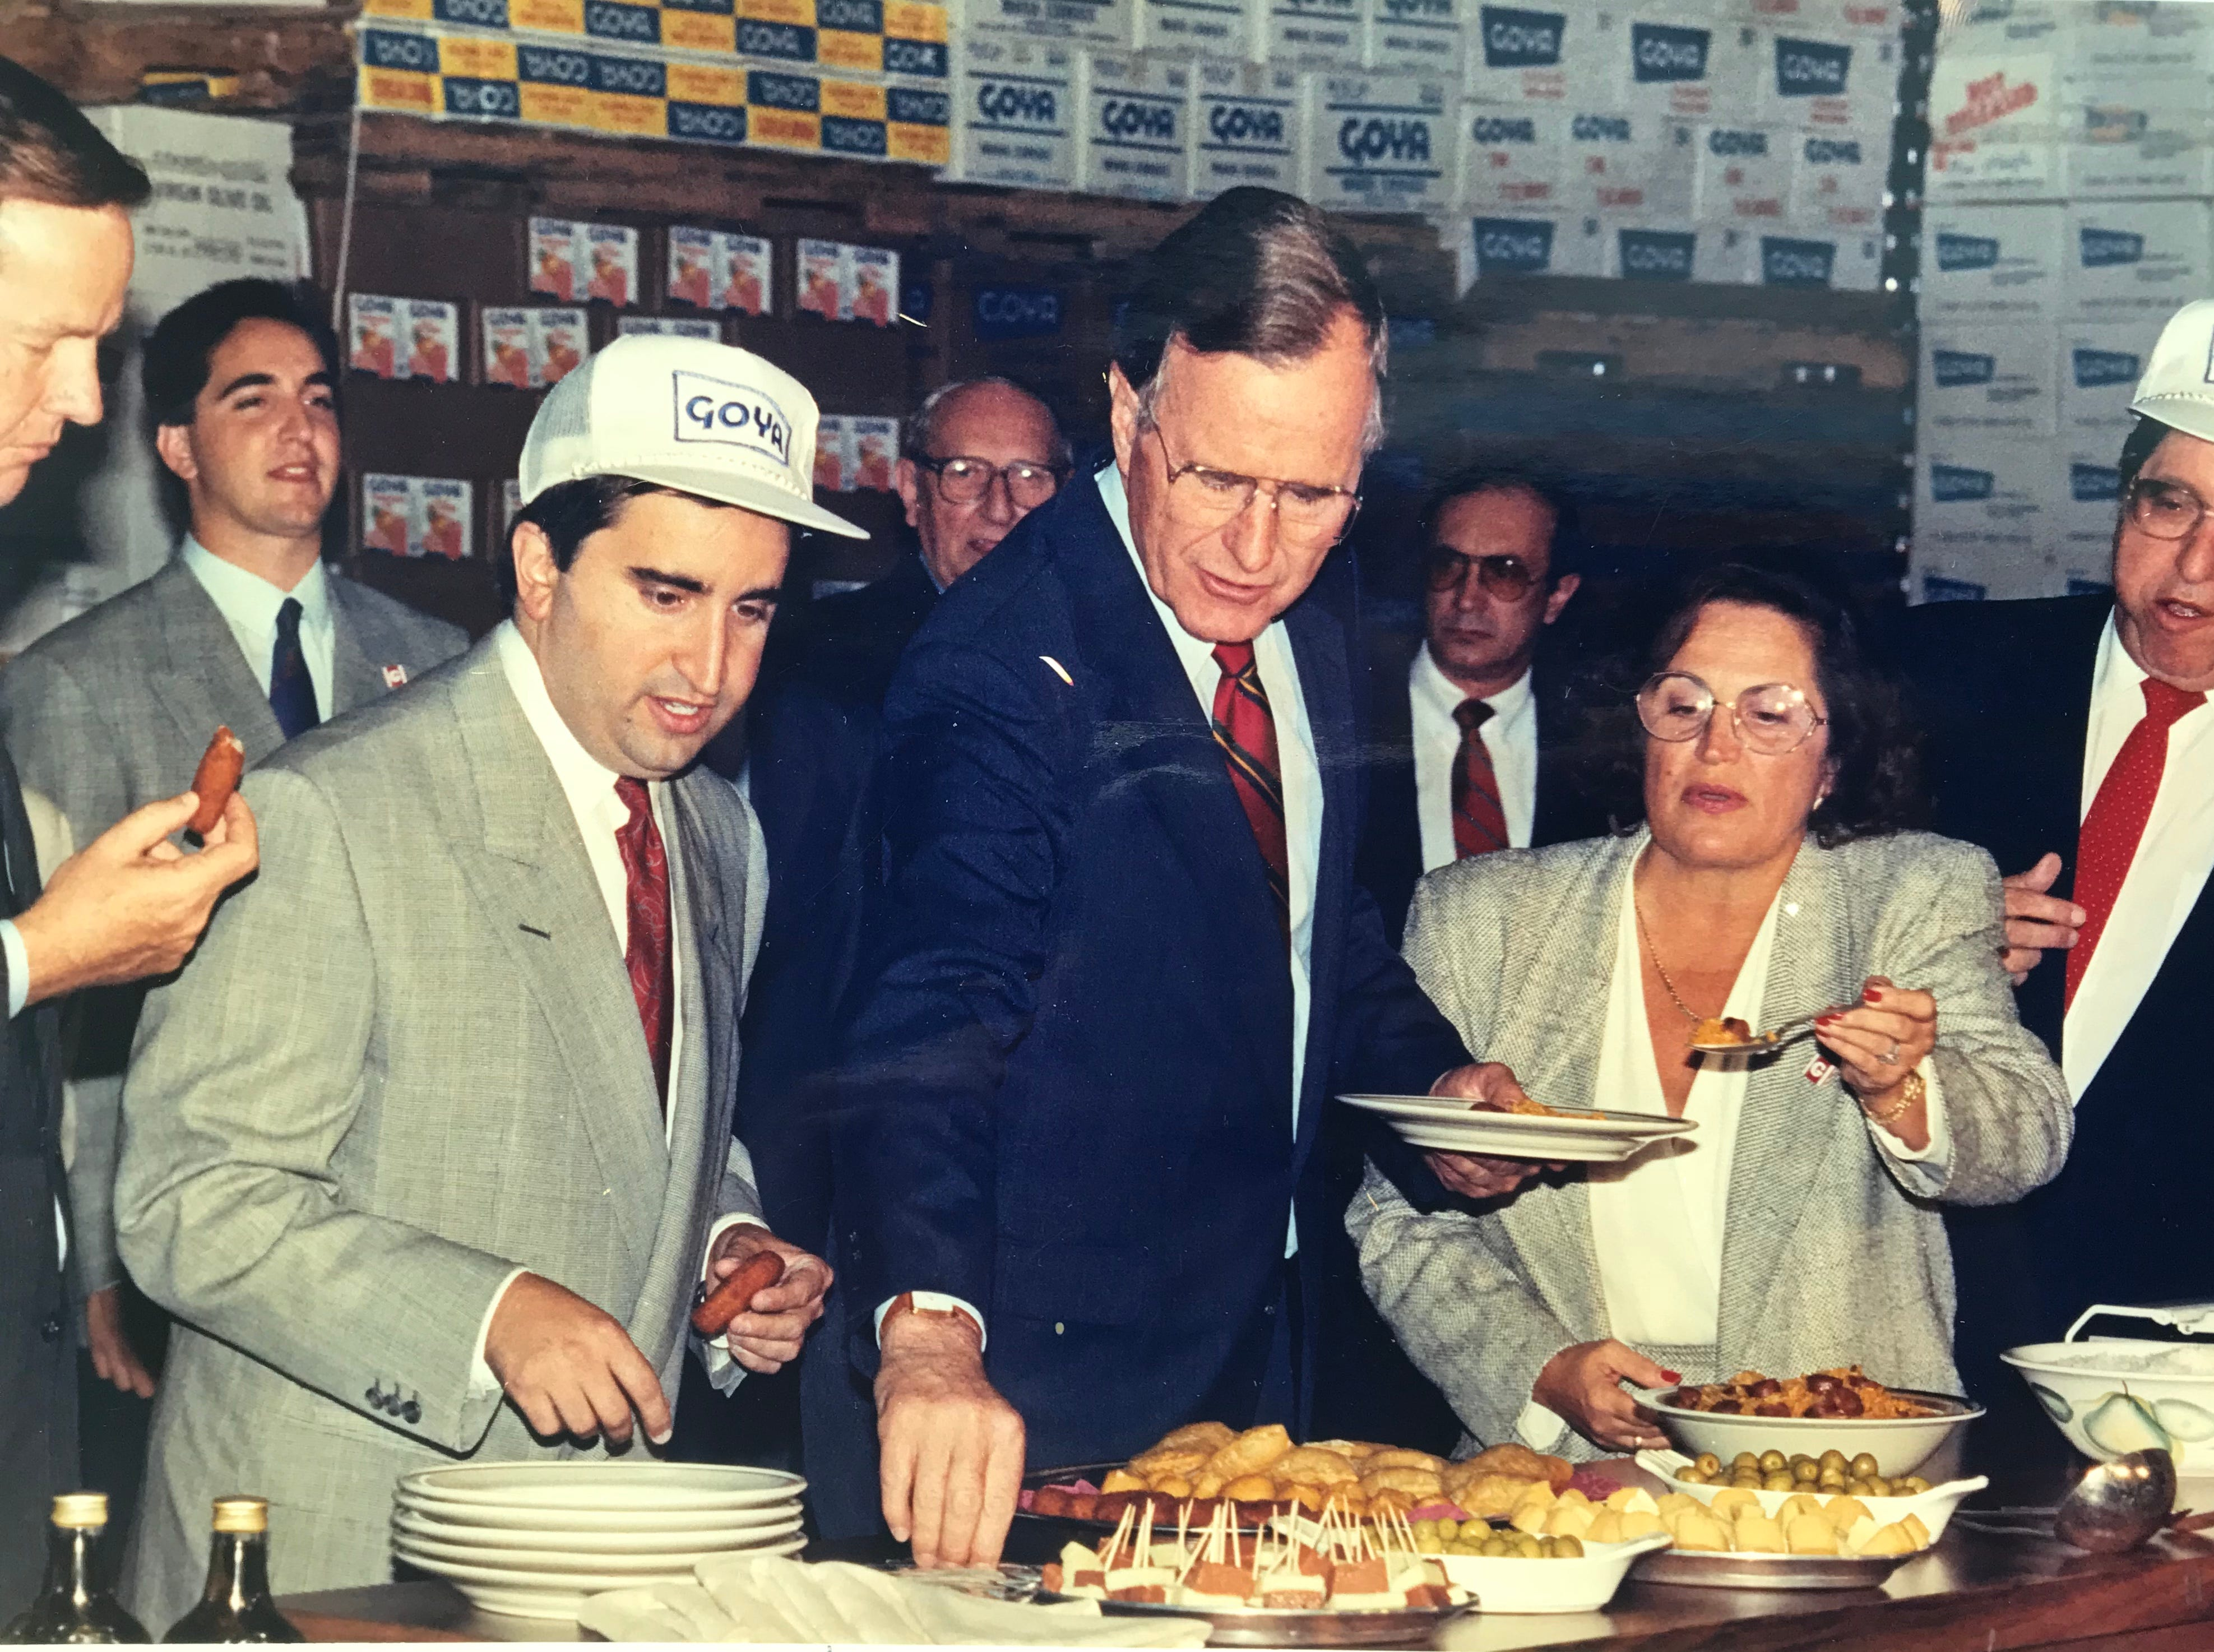 Vice President George Bush tries some Spanish foods at the Goya factory in Secaucus in this September 1988 photograph.